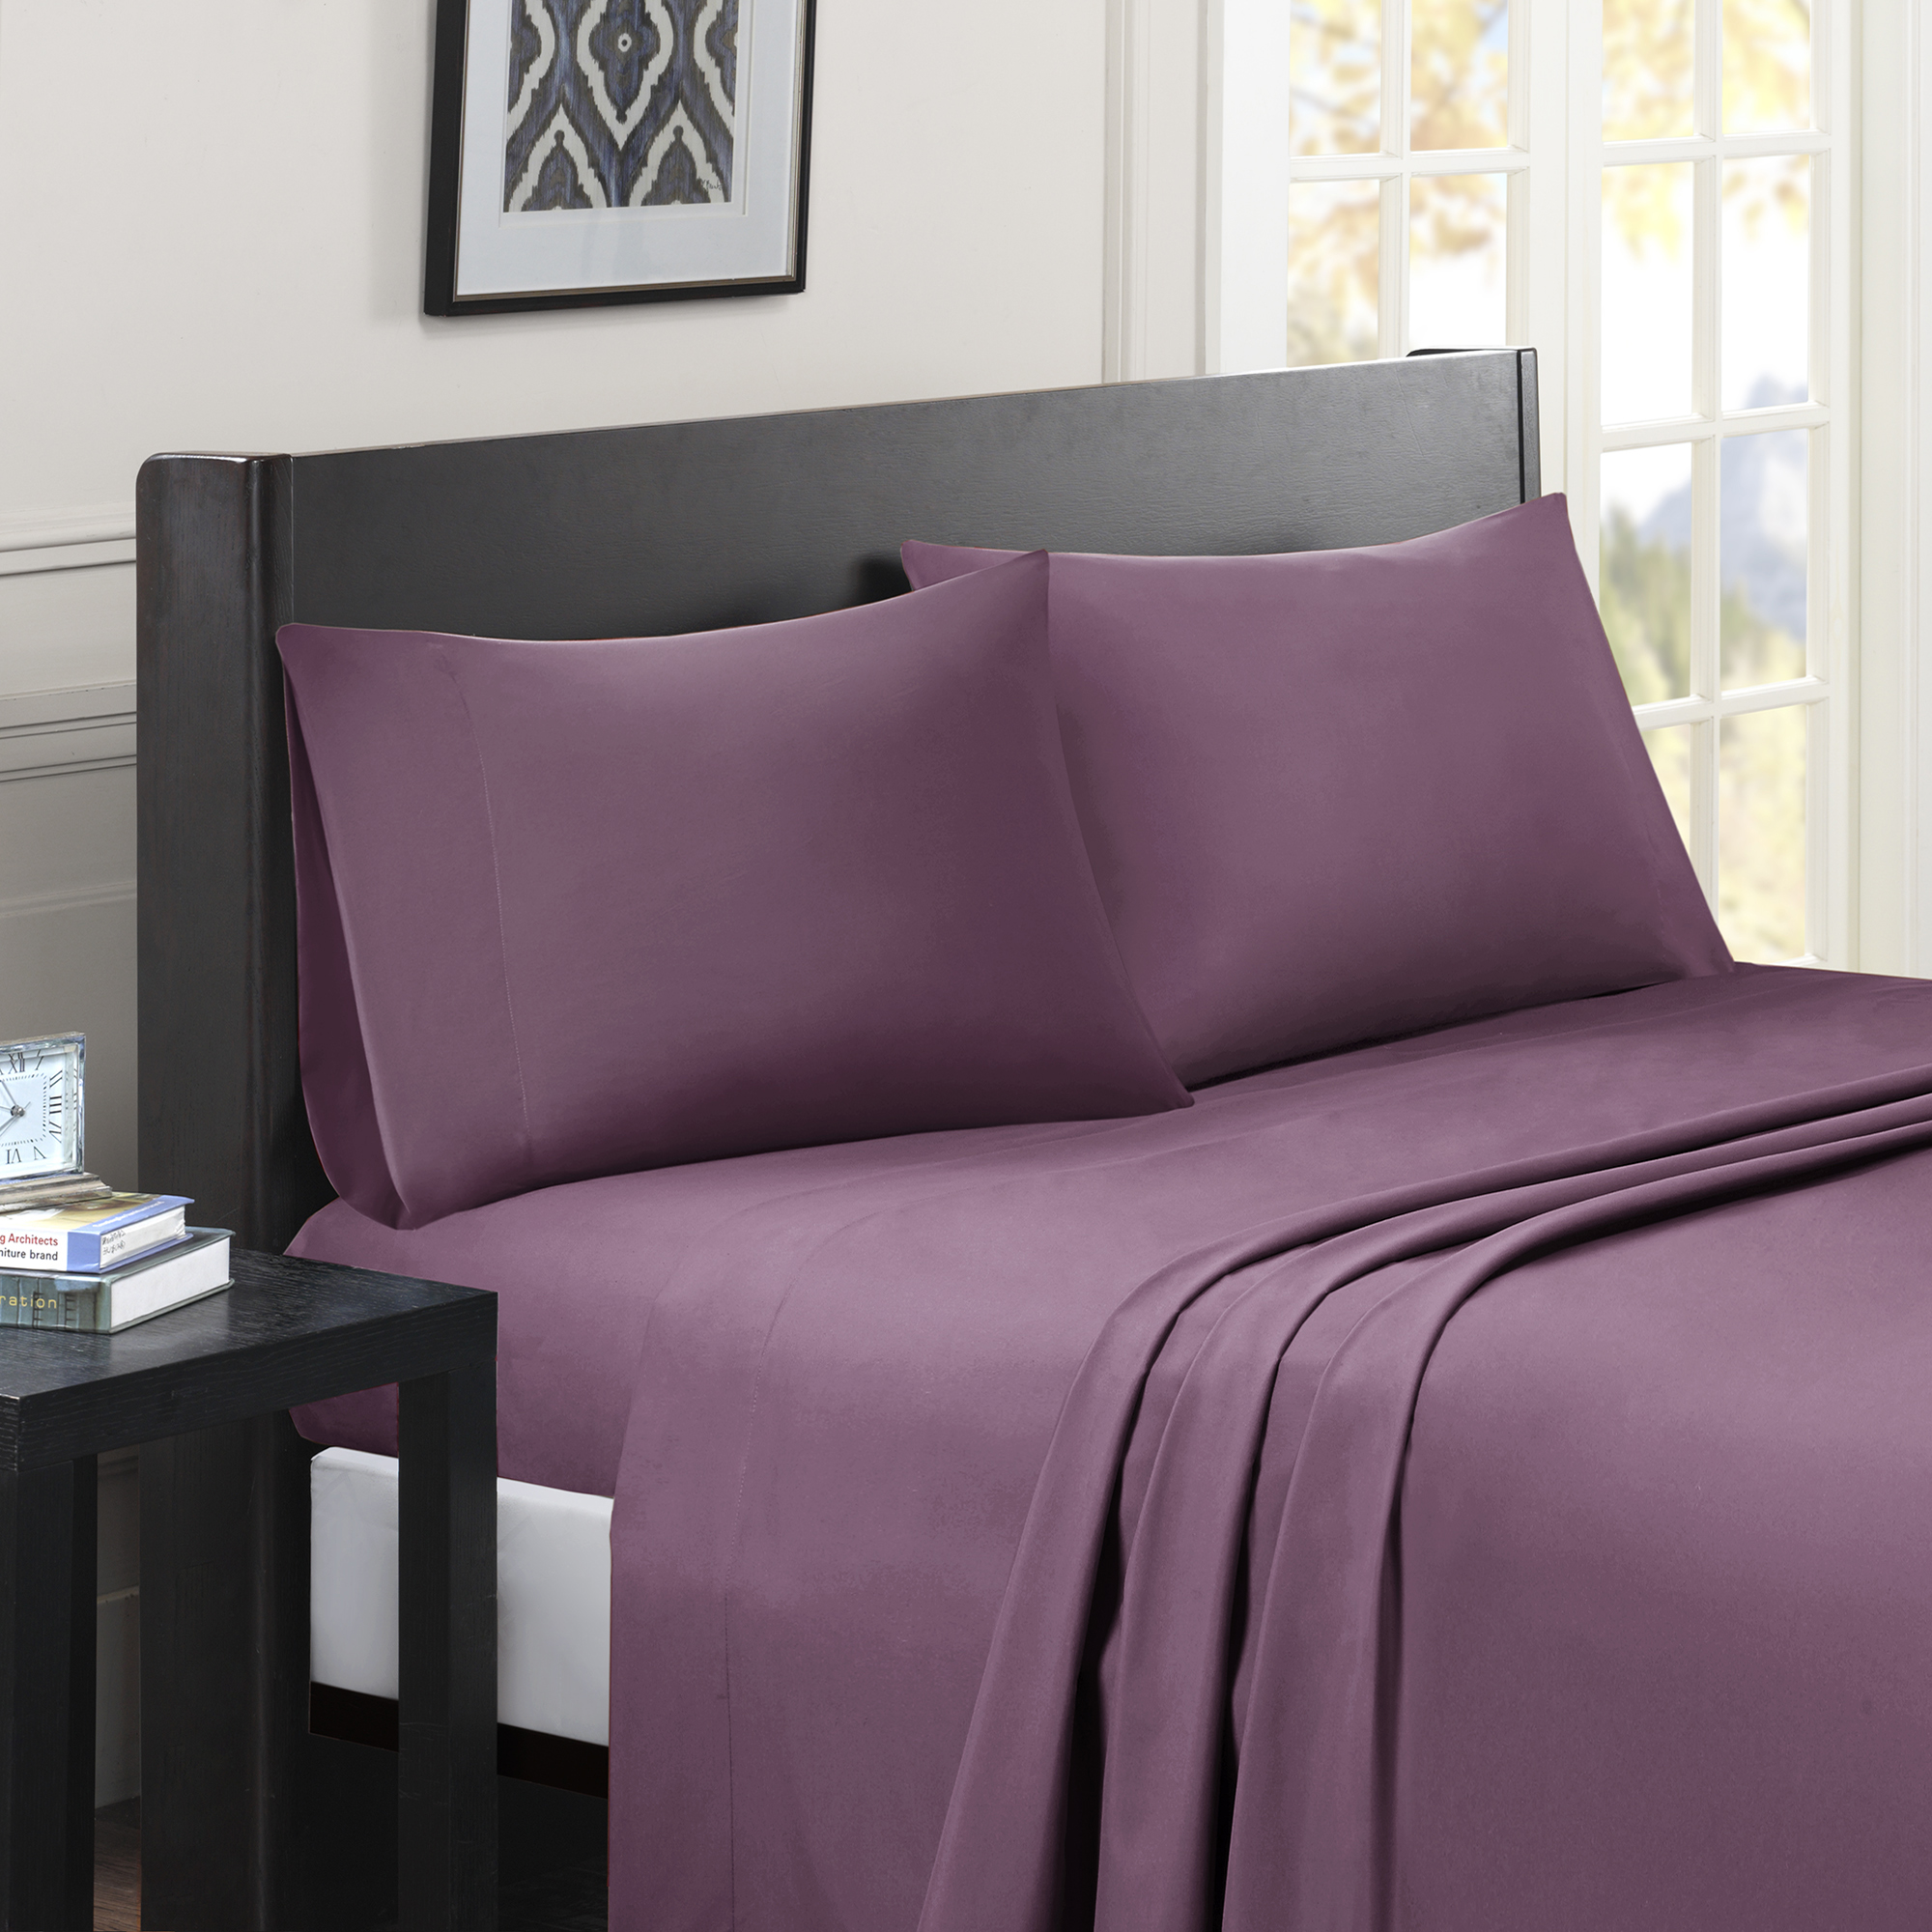 Comfort Classics Micro Splendor Solid Colored Sheet Set